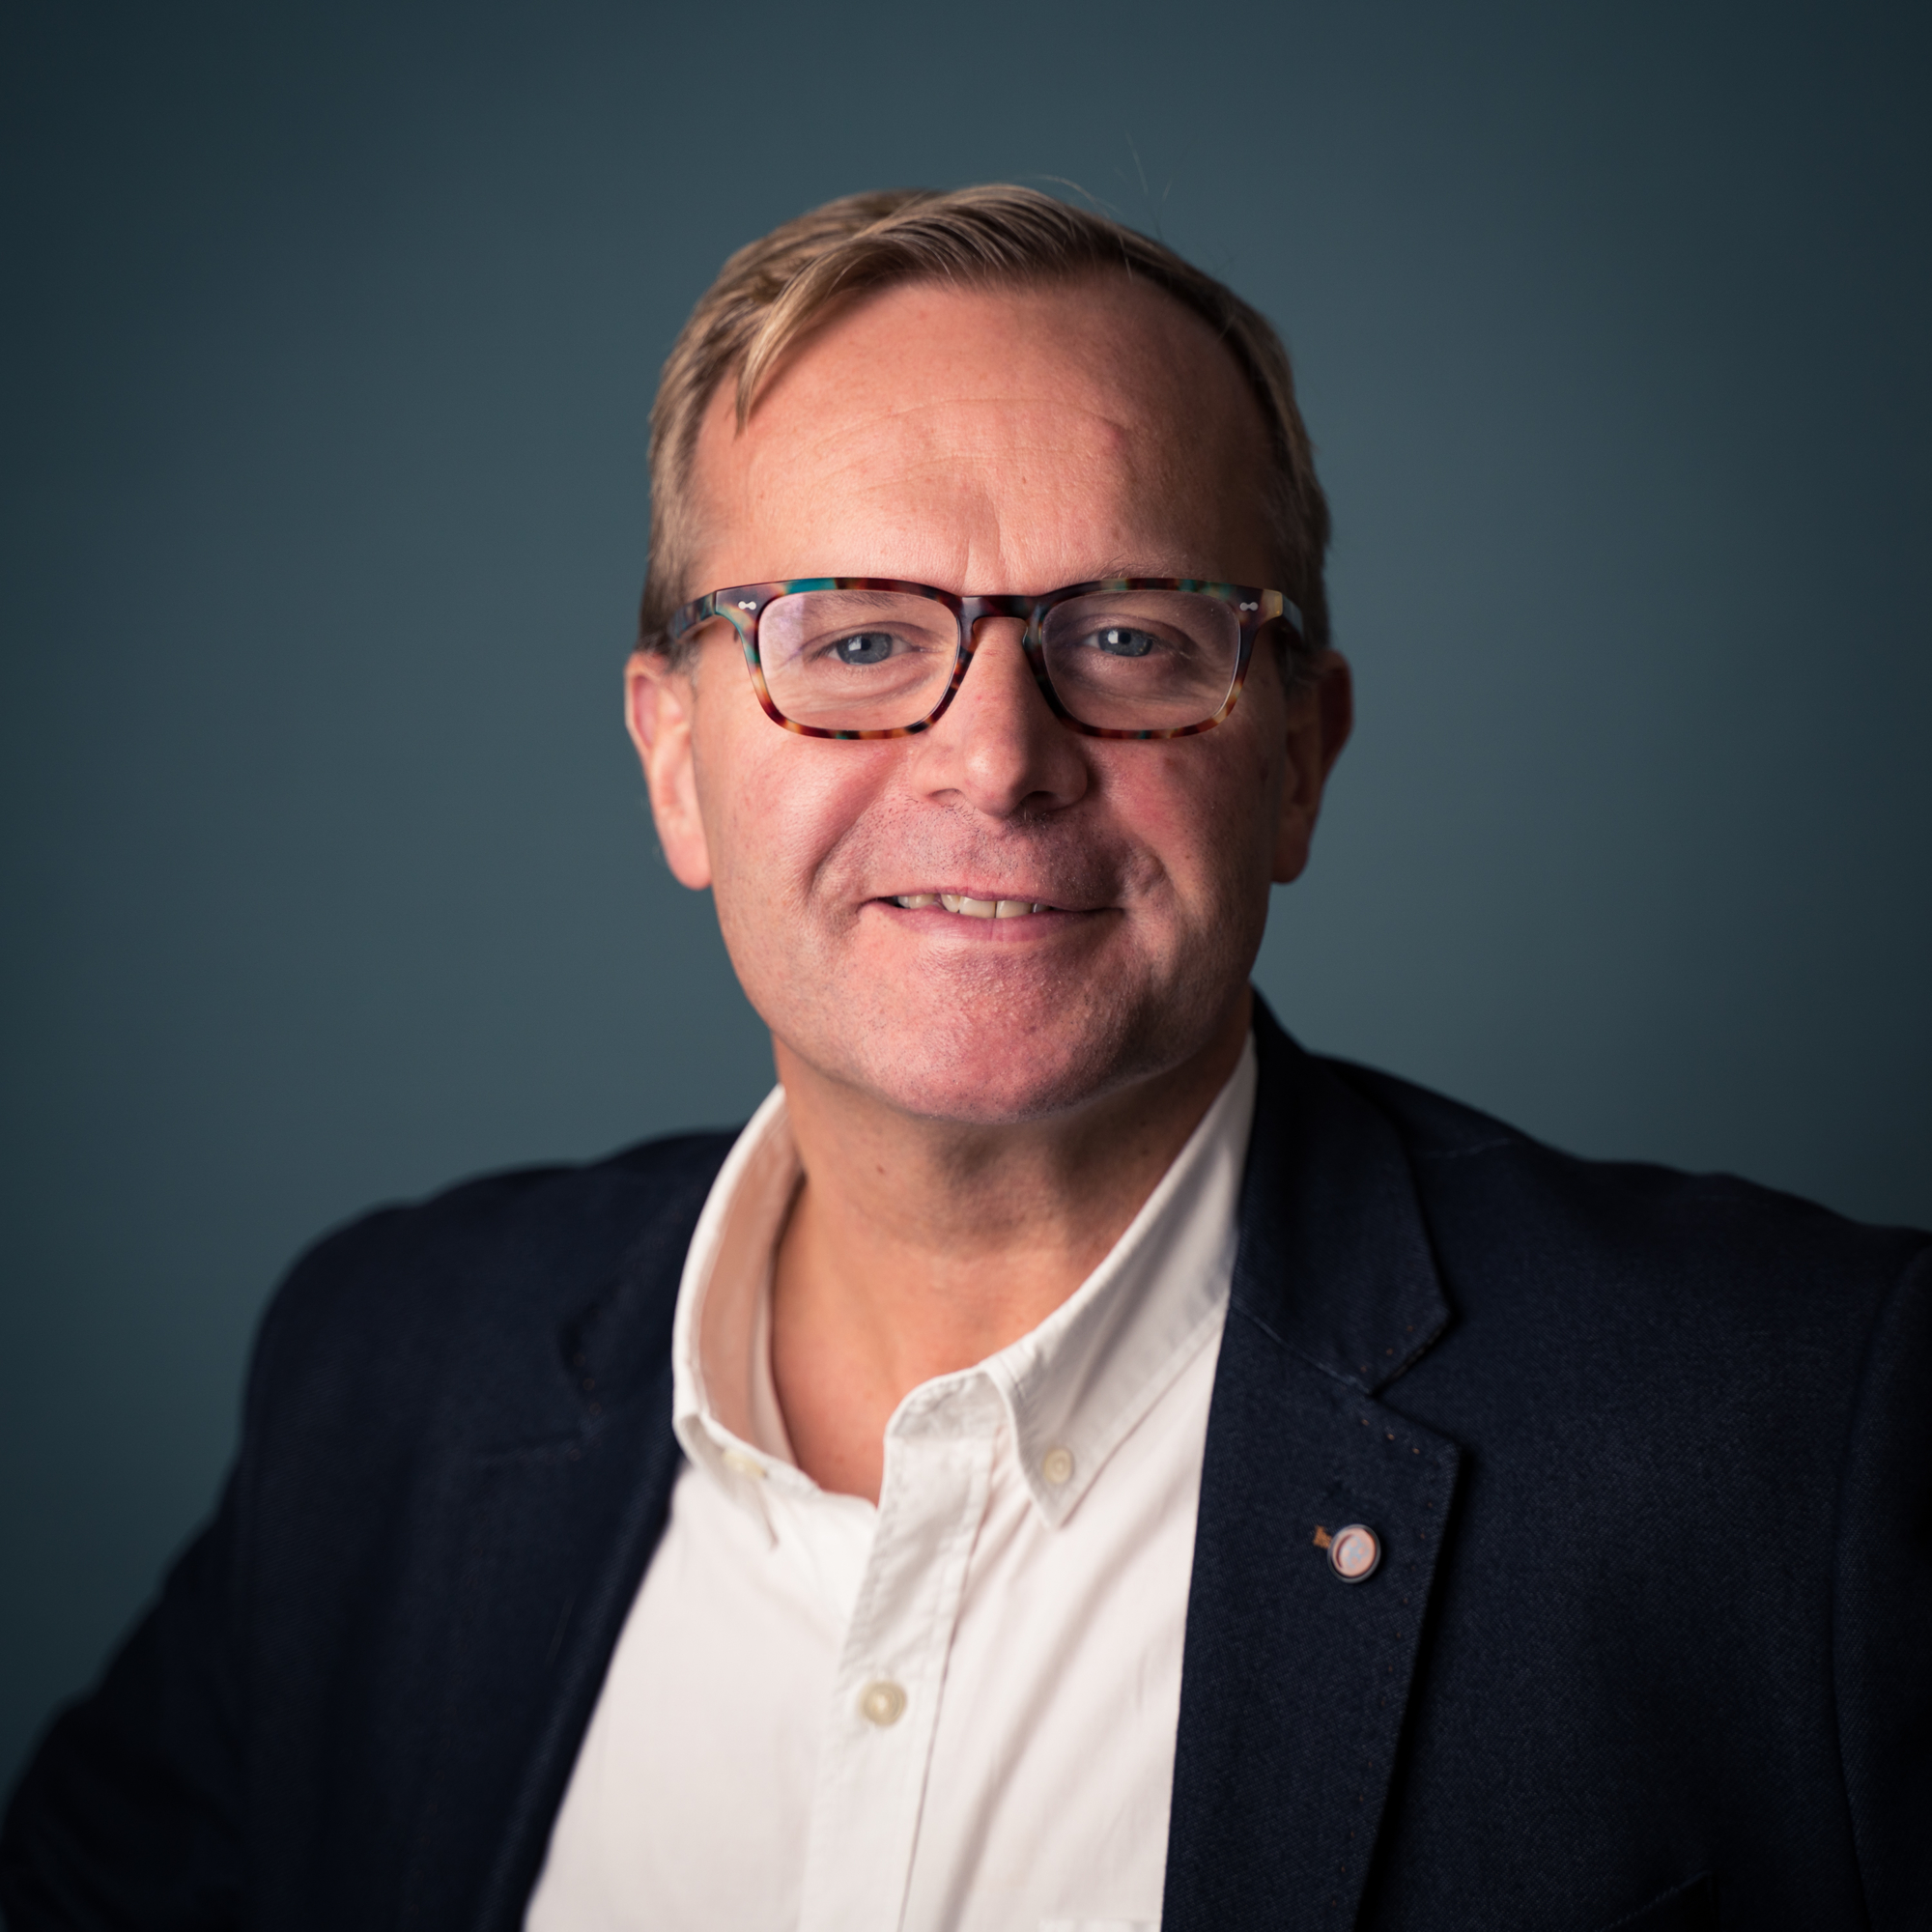 Image of Gary Bryant, MSL Chief Executive